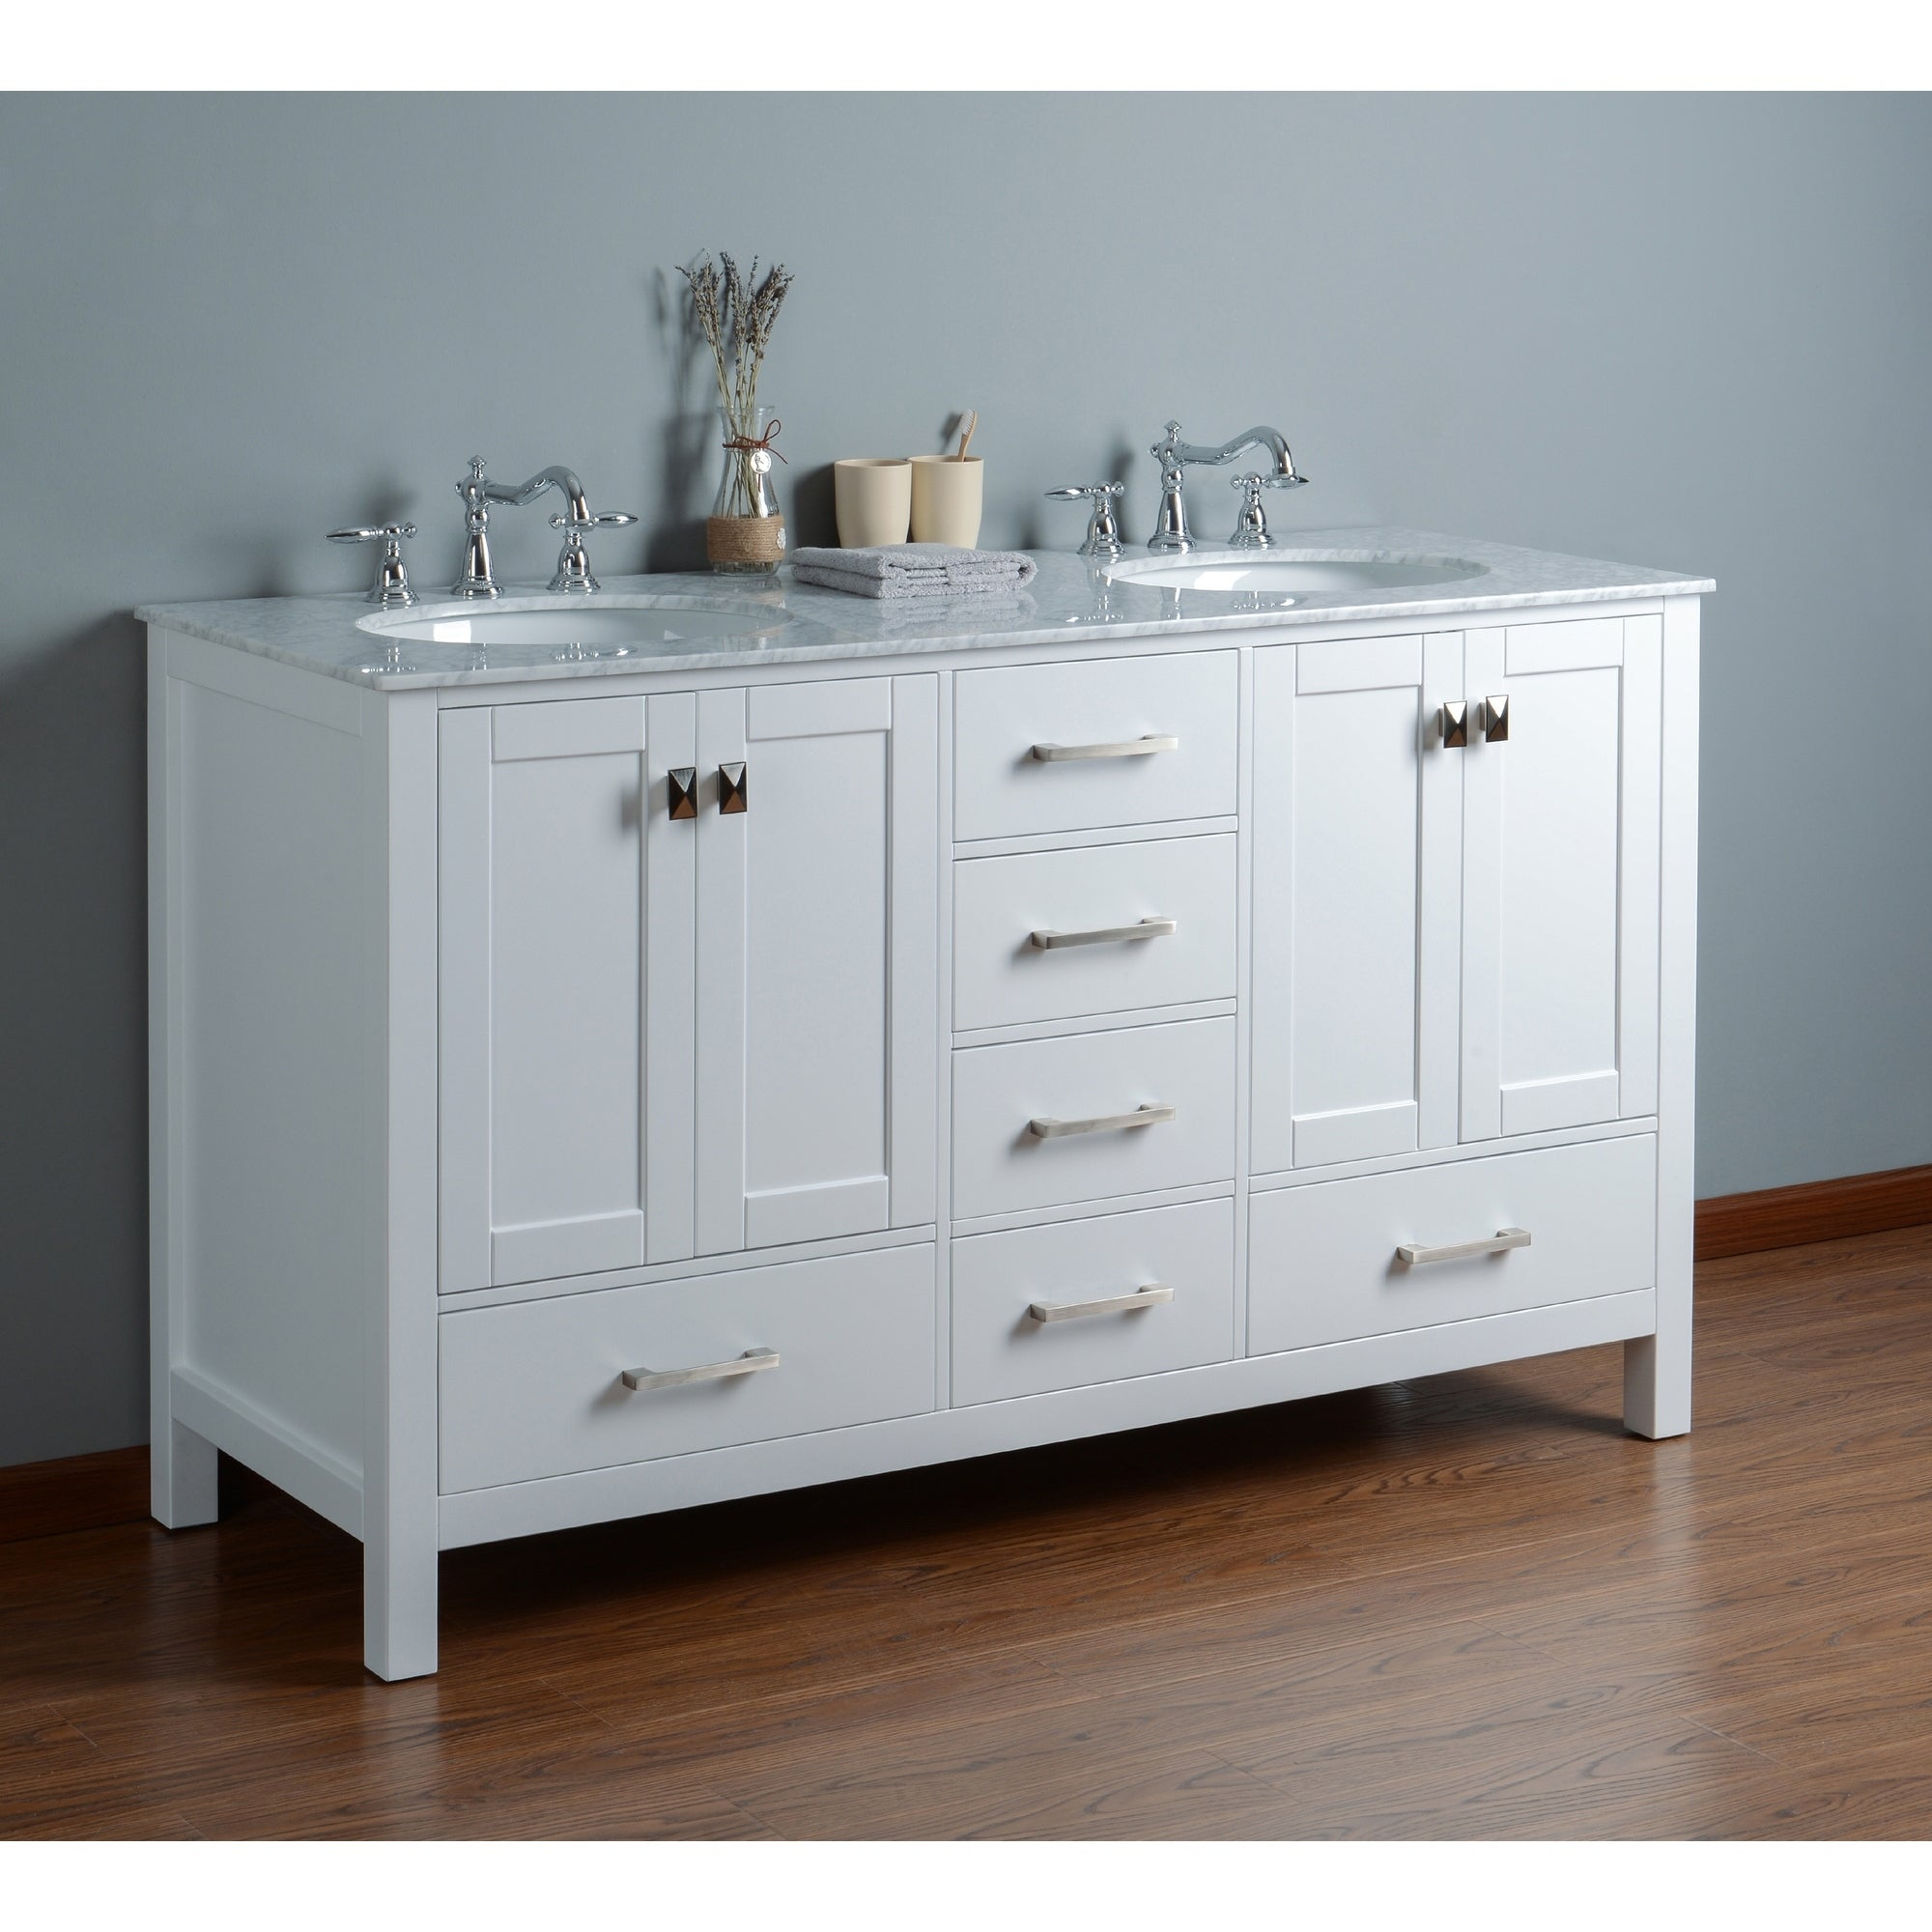 ideas stunning all ikea of inch remarkable new bathroom about remodel sink vanity design double